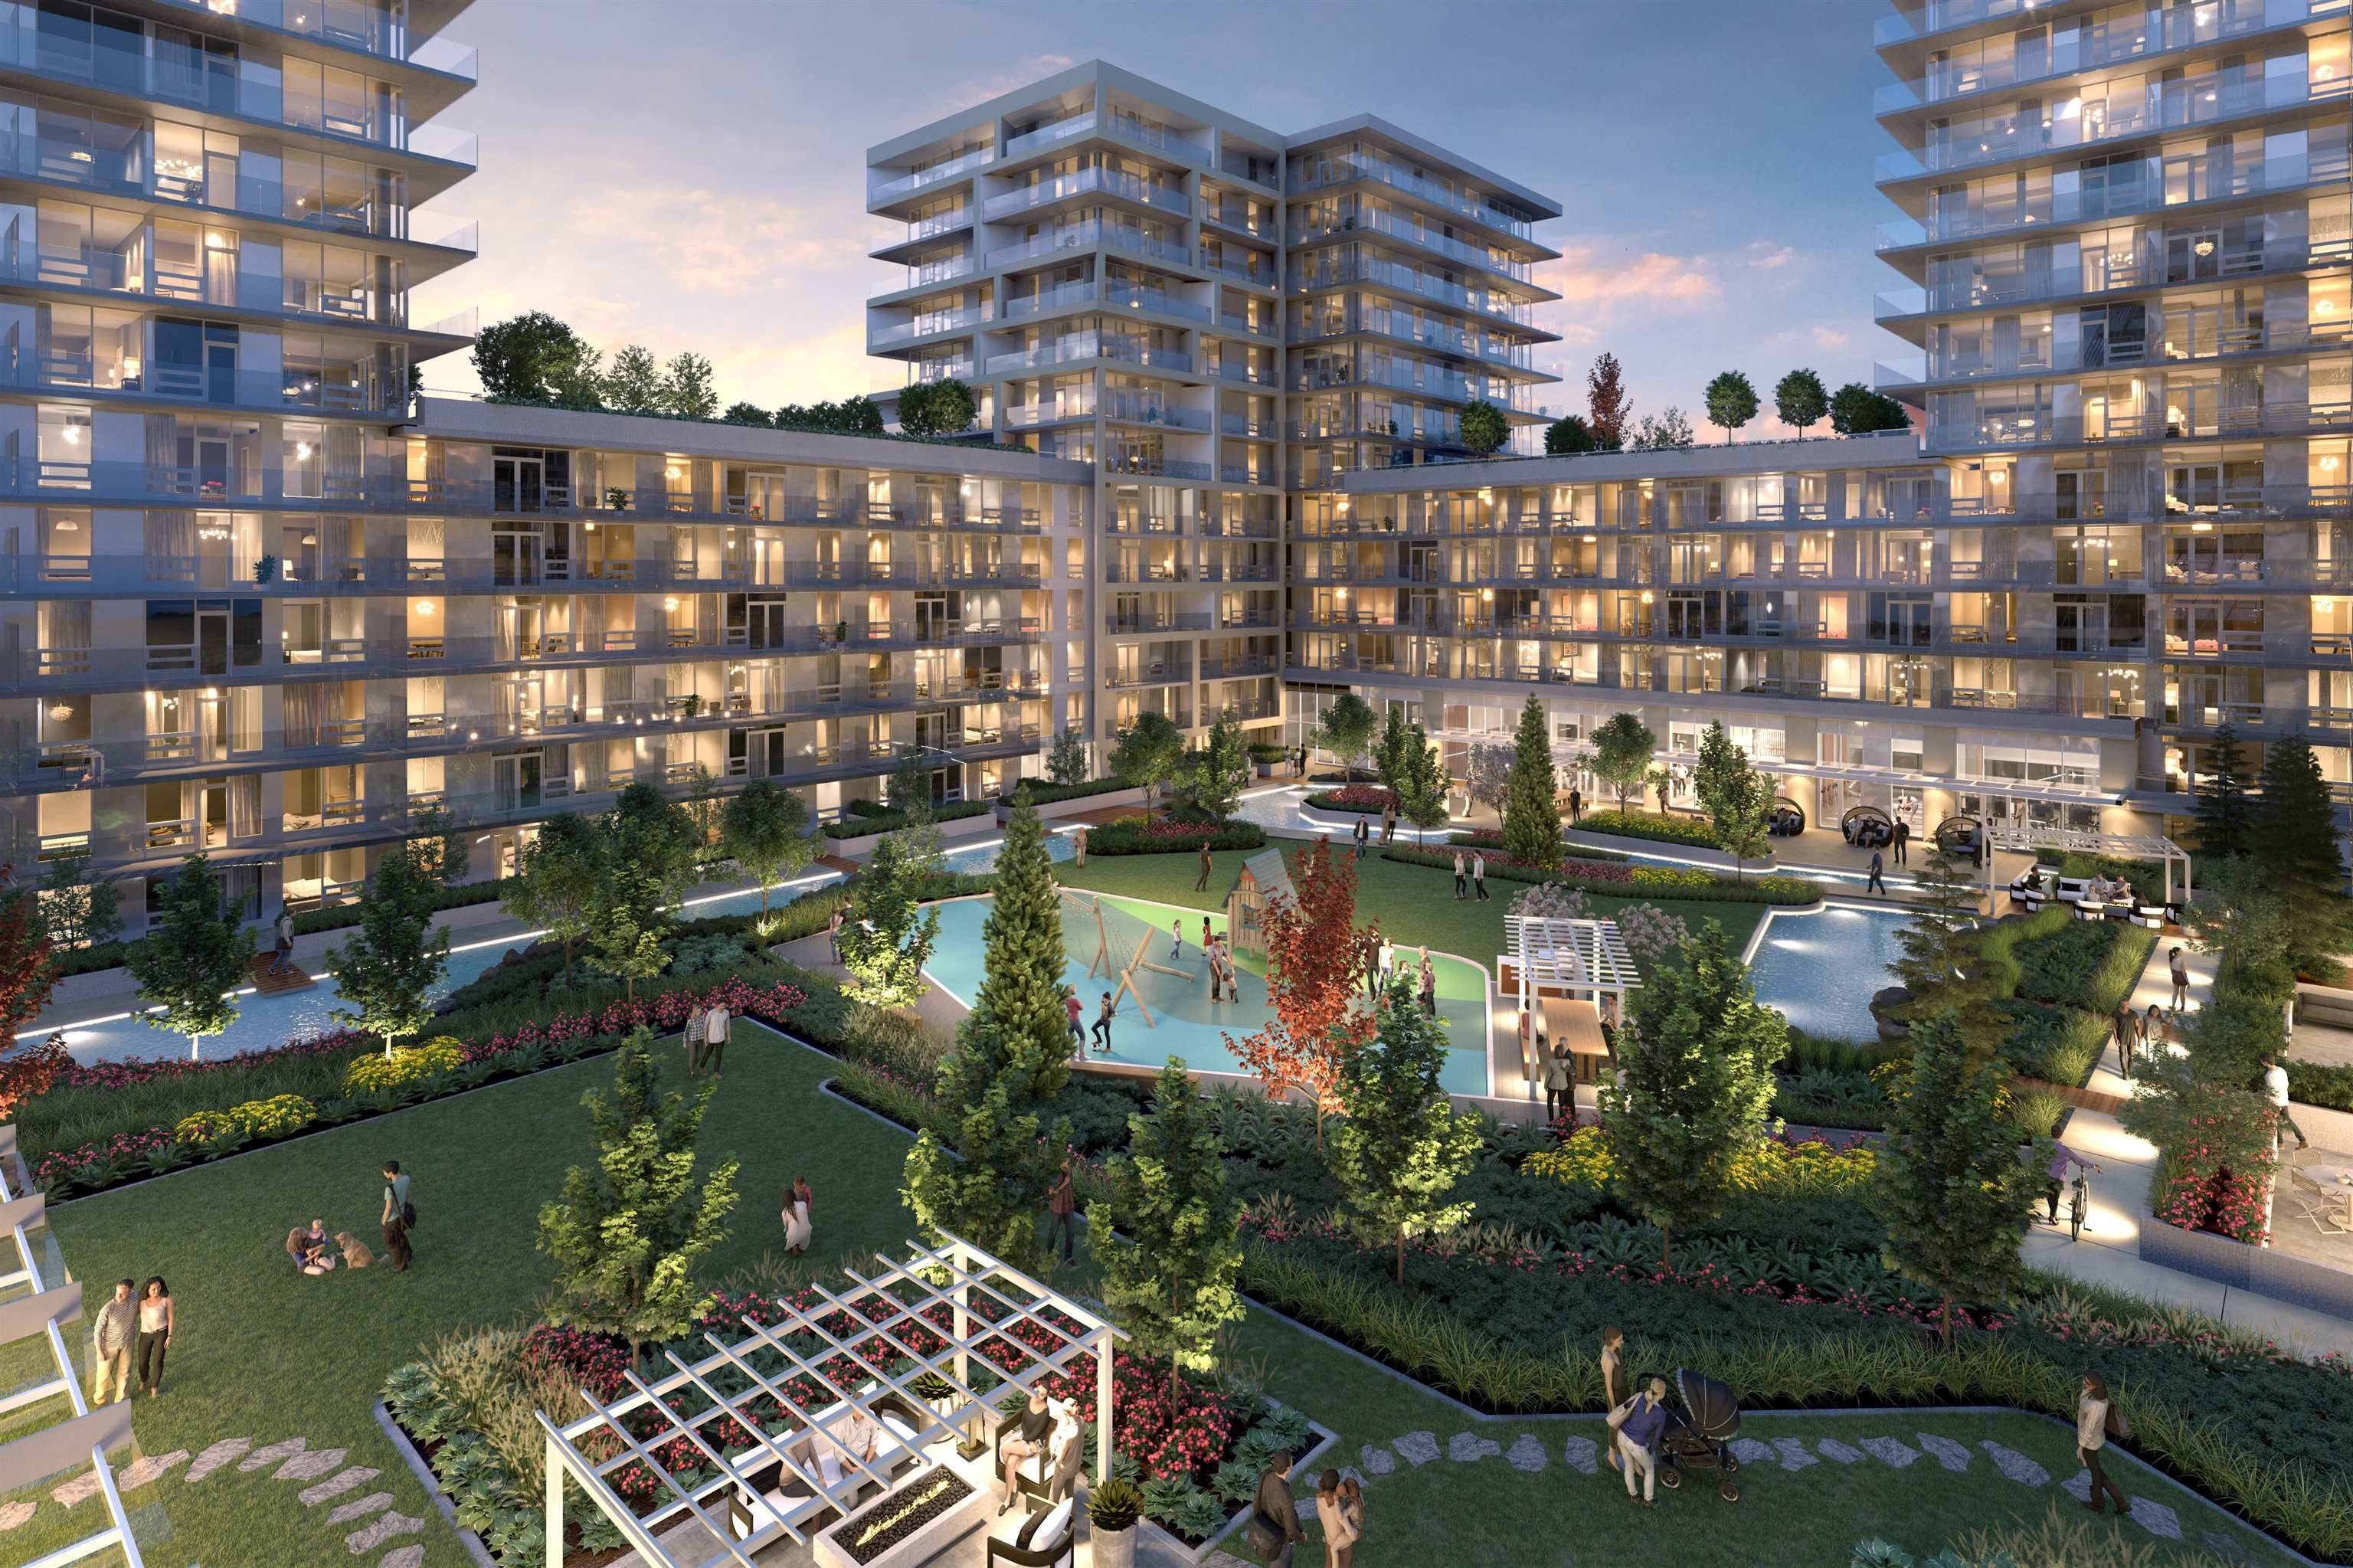 """Main Photo: 427 6340 NO. 3 Road in Richmond: Brighouse Condo for sale in """"PARAMOUNT TOWER 3"""" : MLS®# R2618960"""